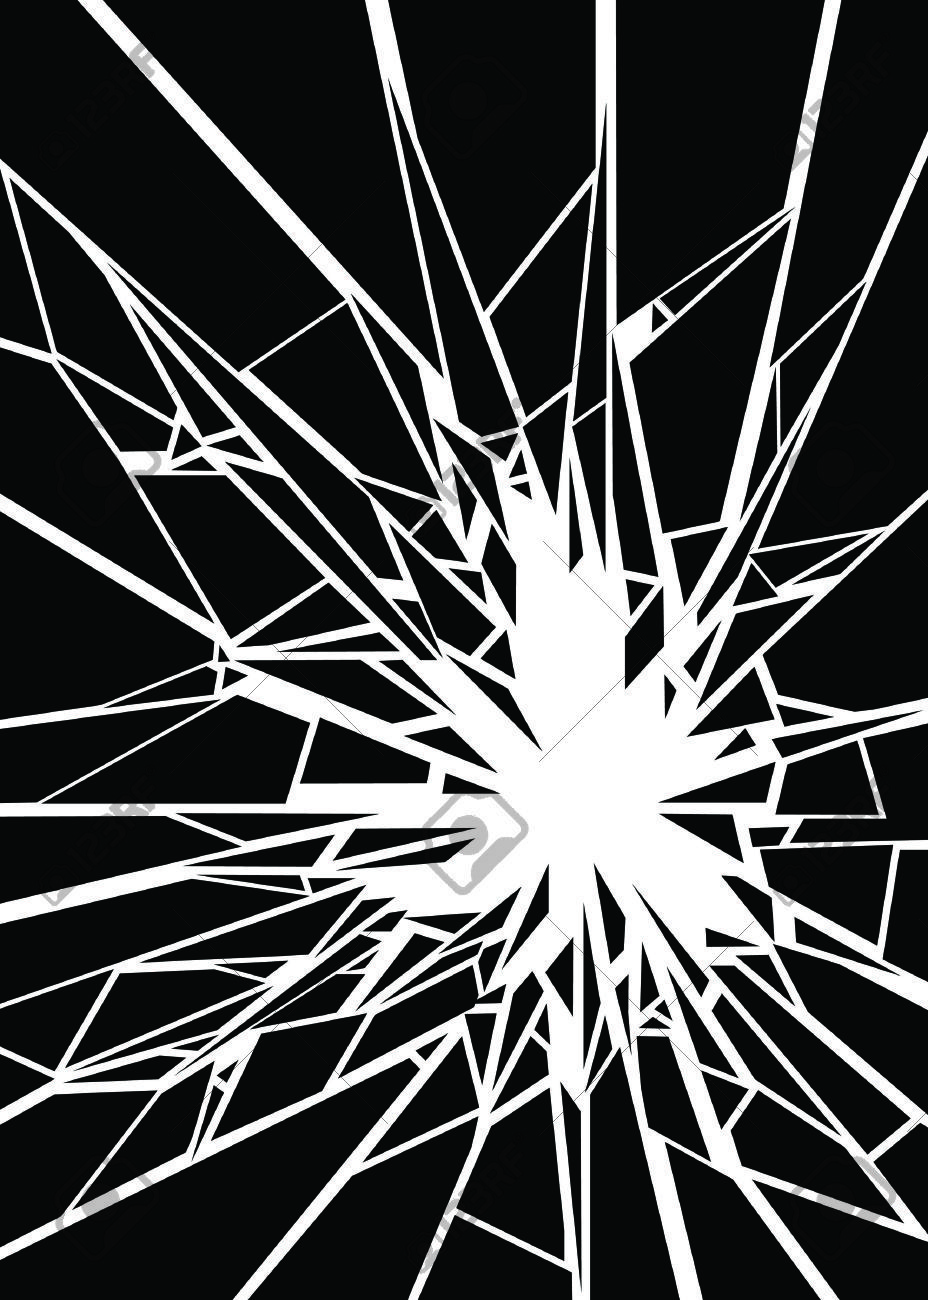 Shattered Glass Stock Vector Illustration And Royalty Free